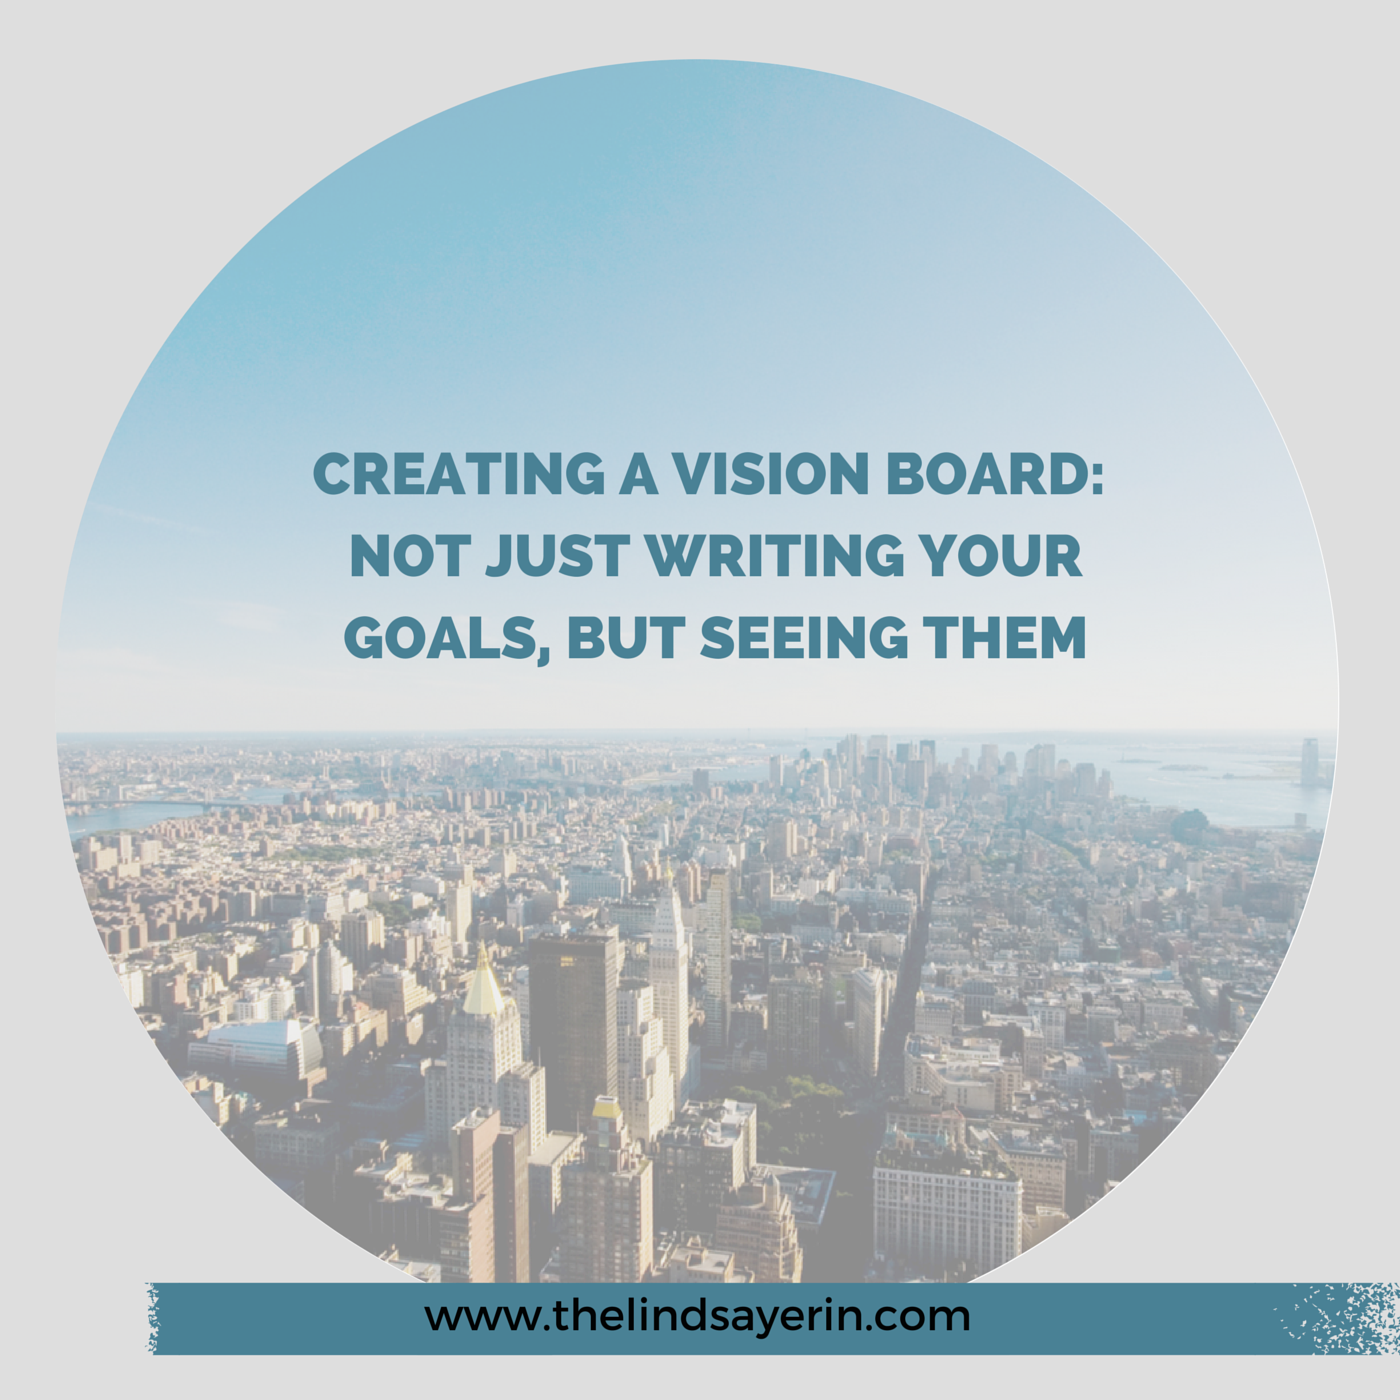 Creating a vision board to see your goals